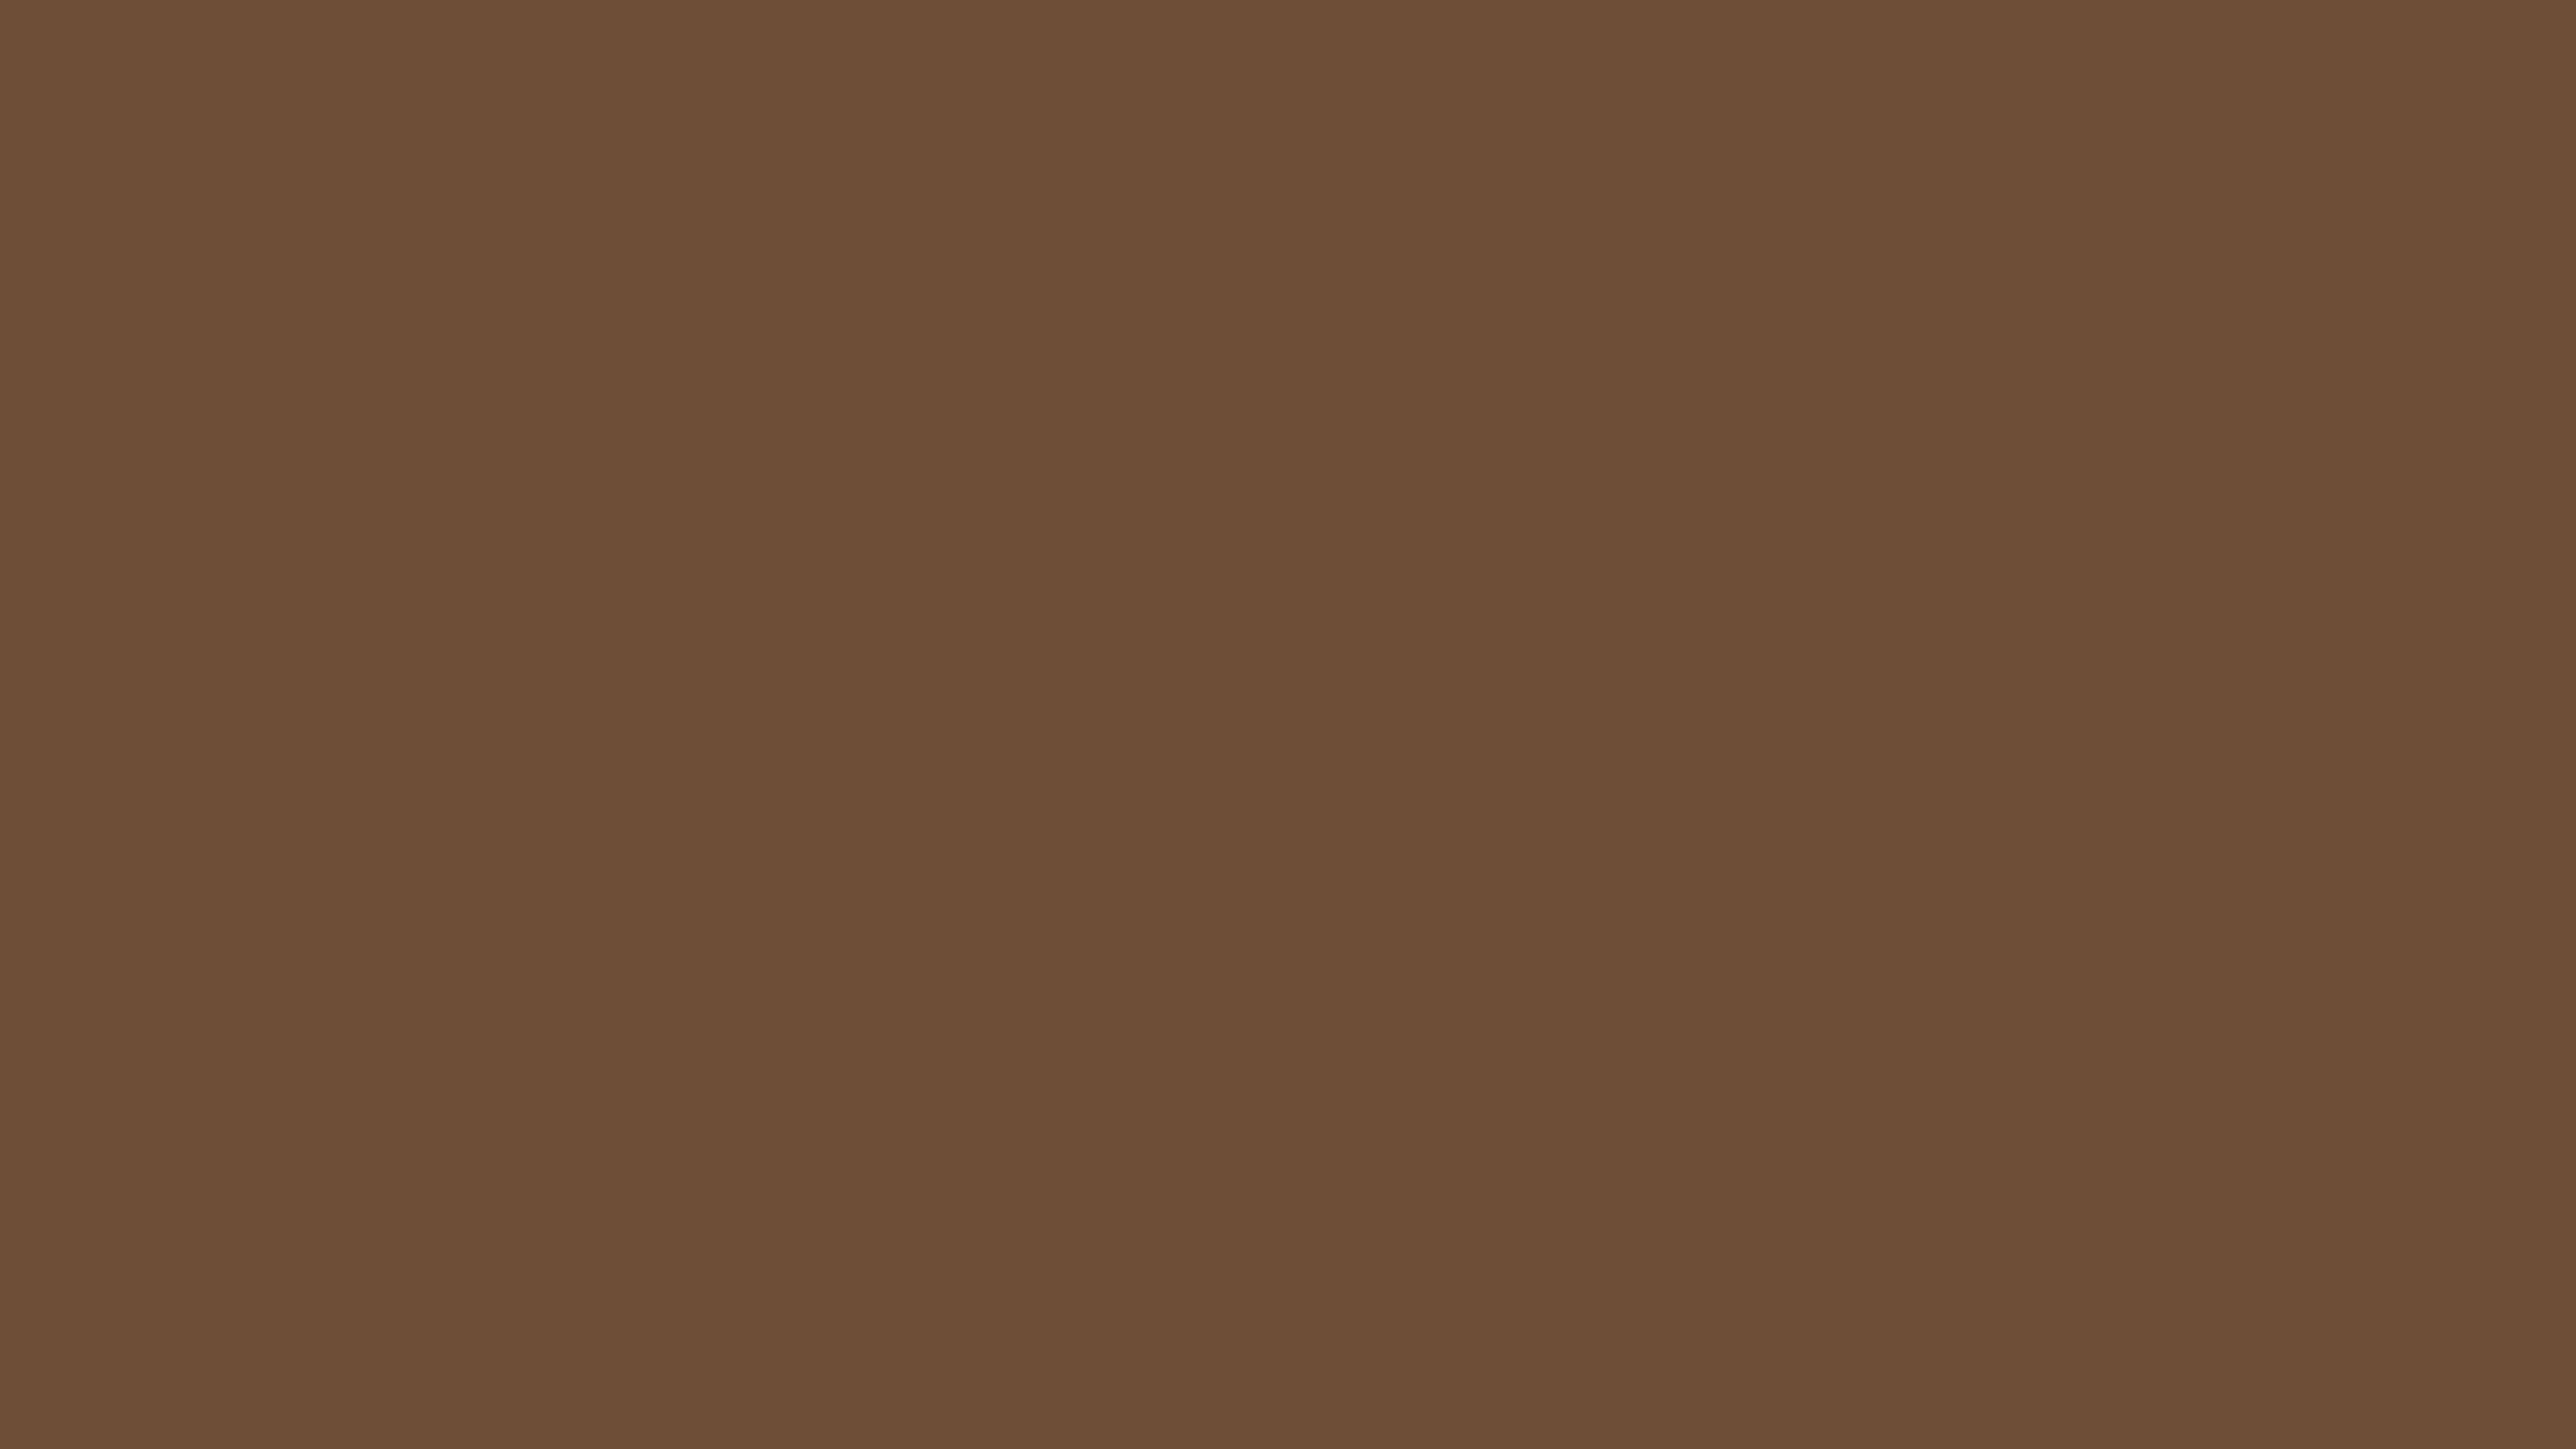 3840x2160 Tuscan Brown Solid Color Background